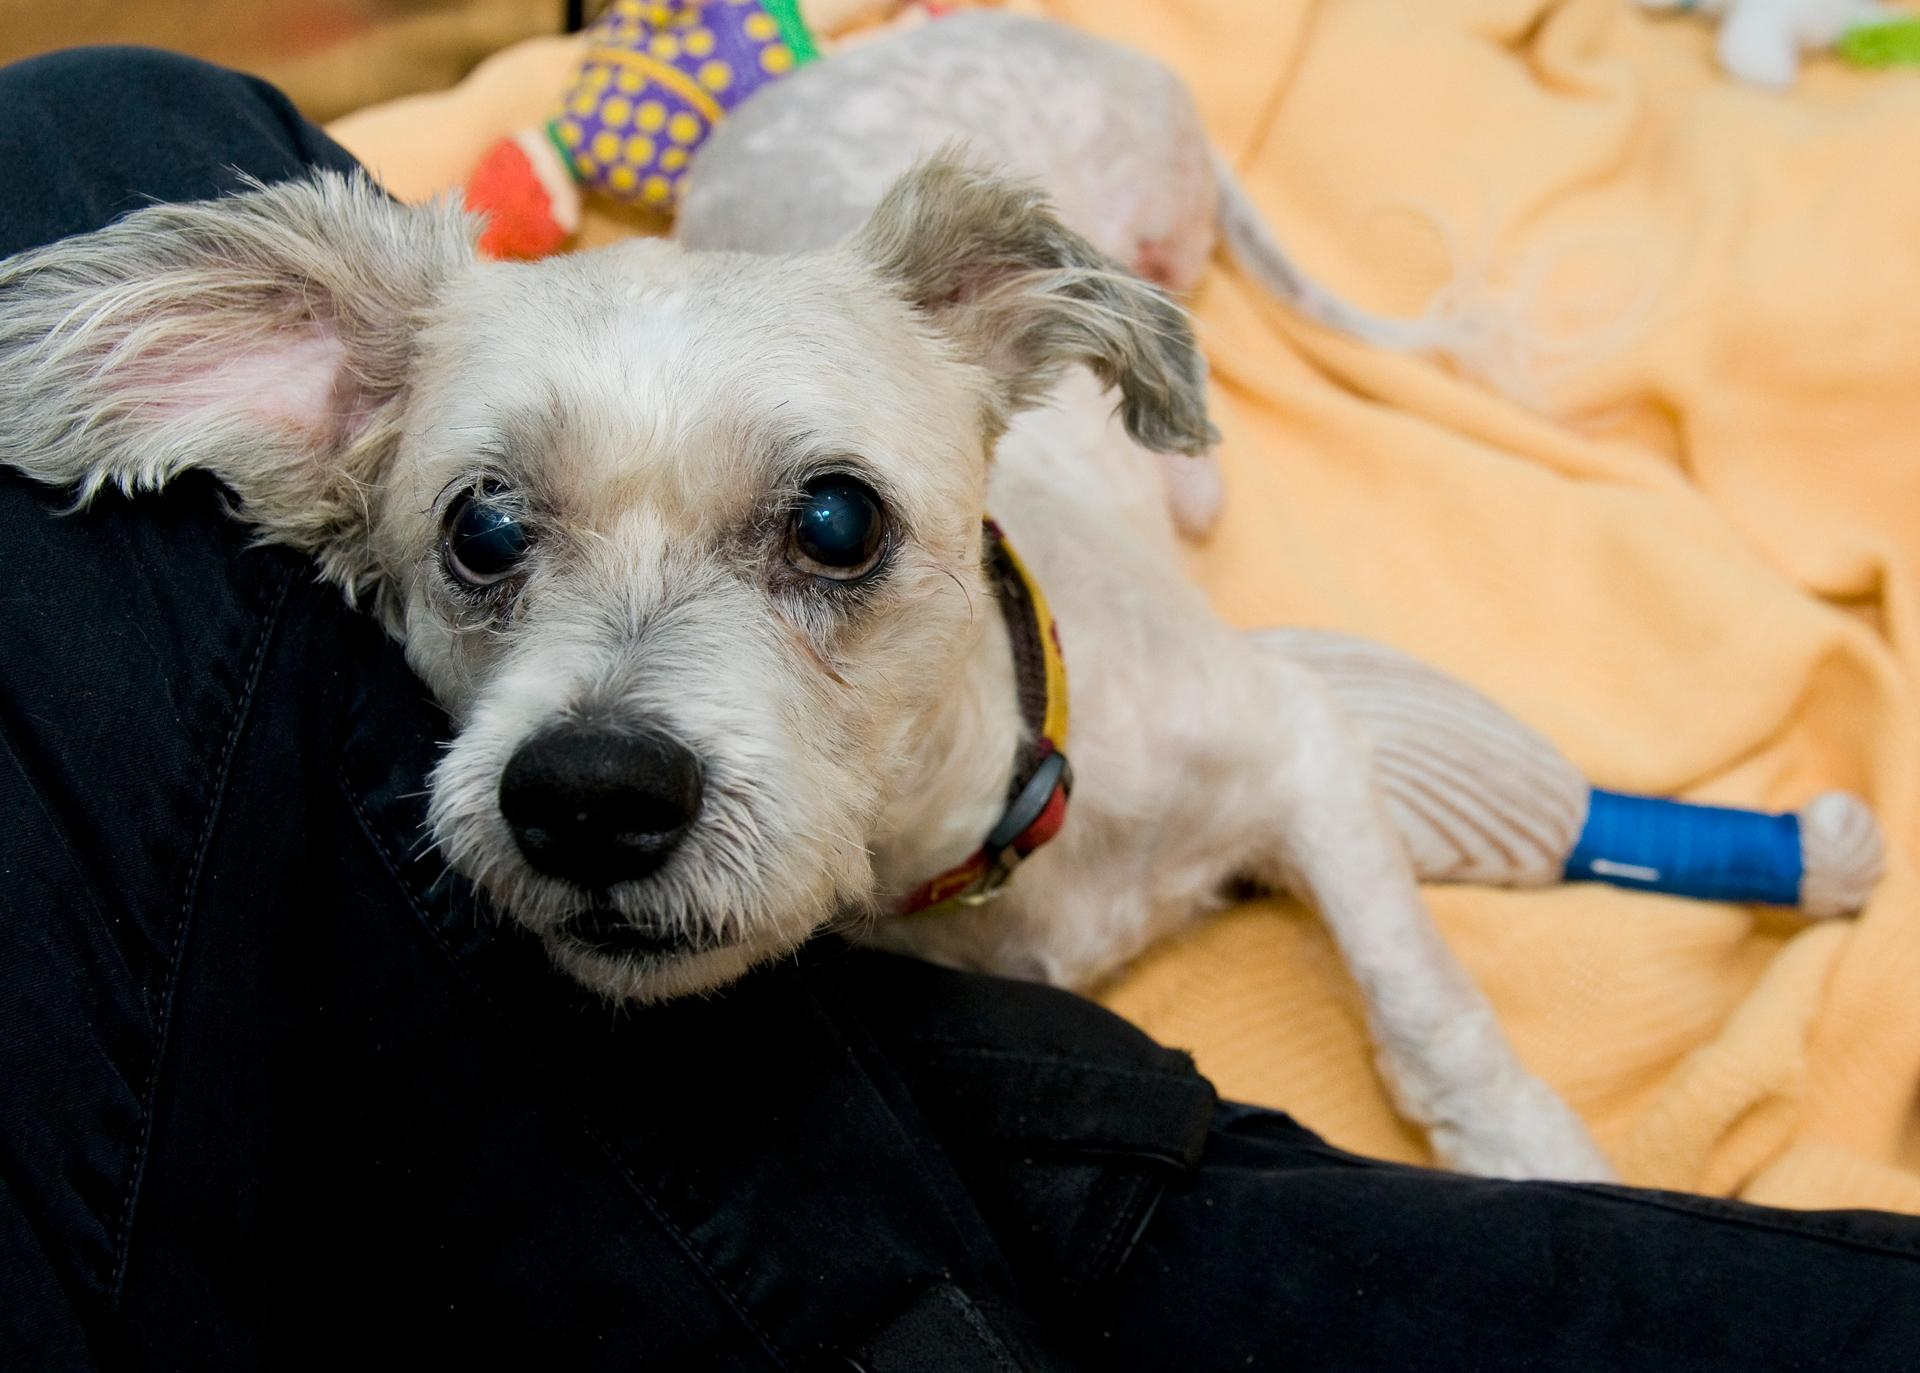 This senior pup has been through a lot in the last month, but you certainly wouldn't know it. His joyful, sweet disposition is infectious and he's sure to put a smile on the face of everyone he meets. (HRA)